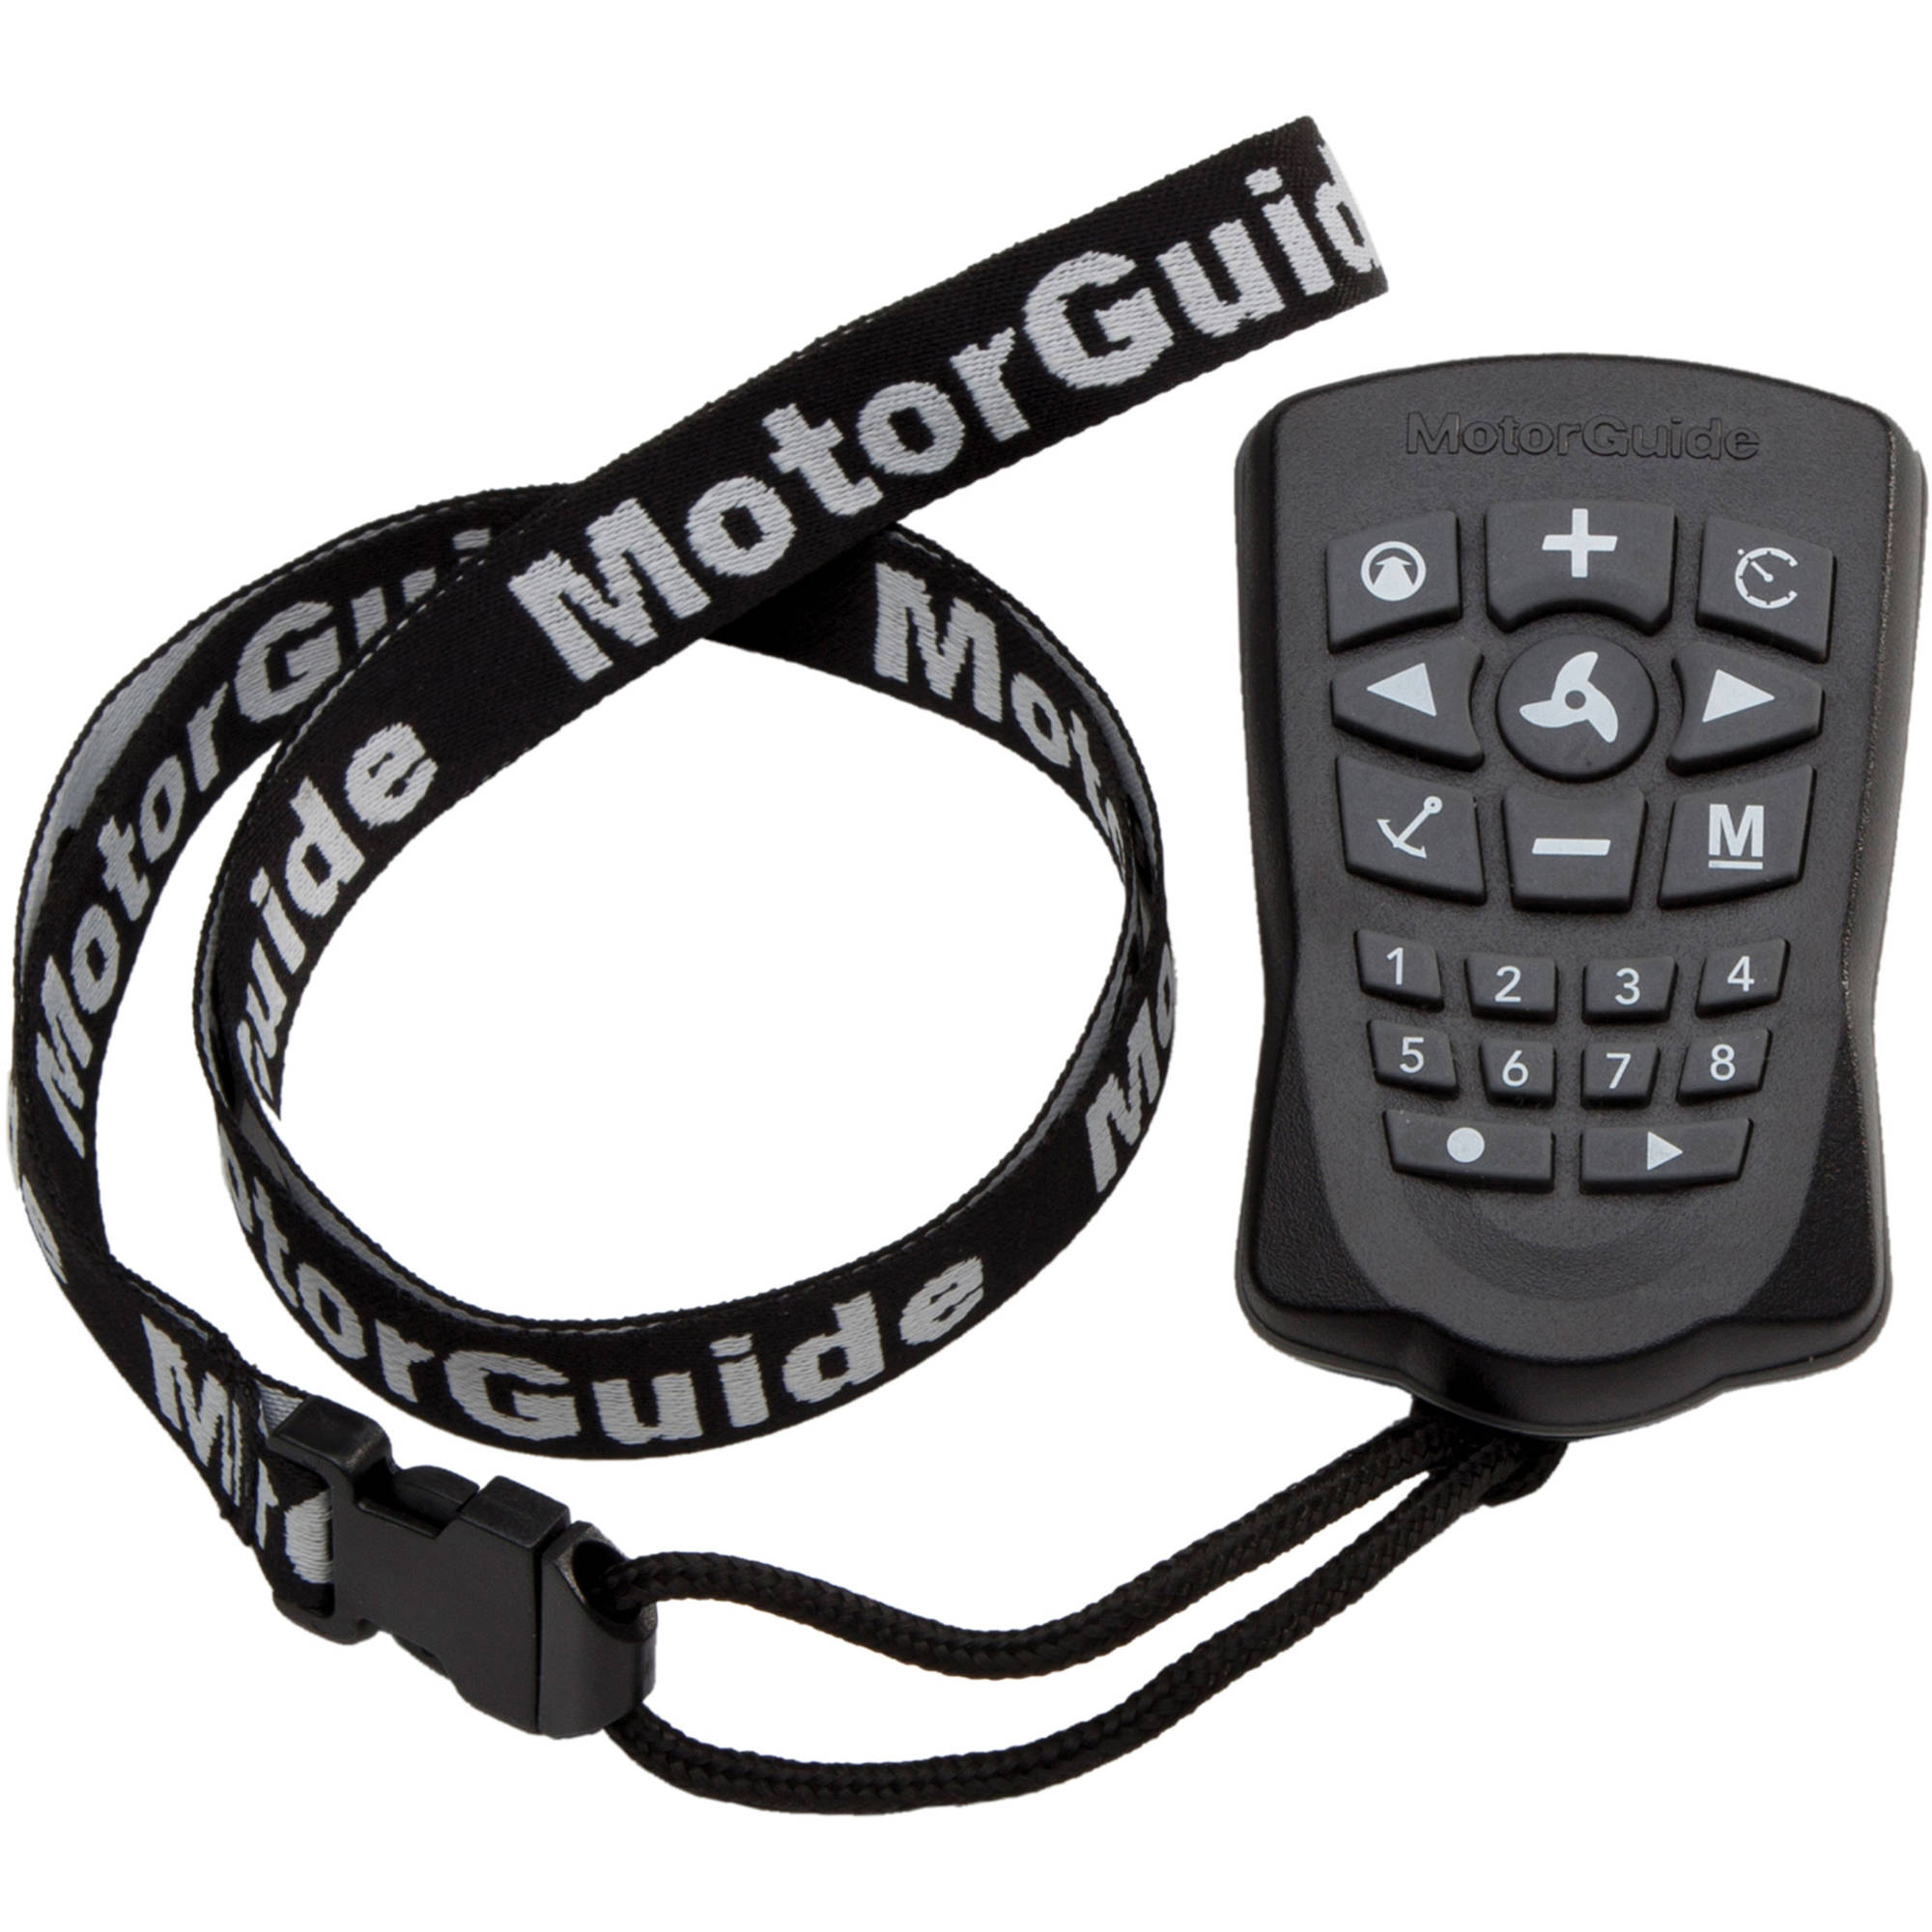 MotorGuide 8M0092071 Remote for PinPoint GPS Navigation System